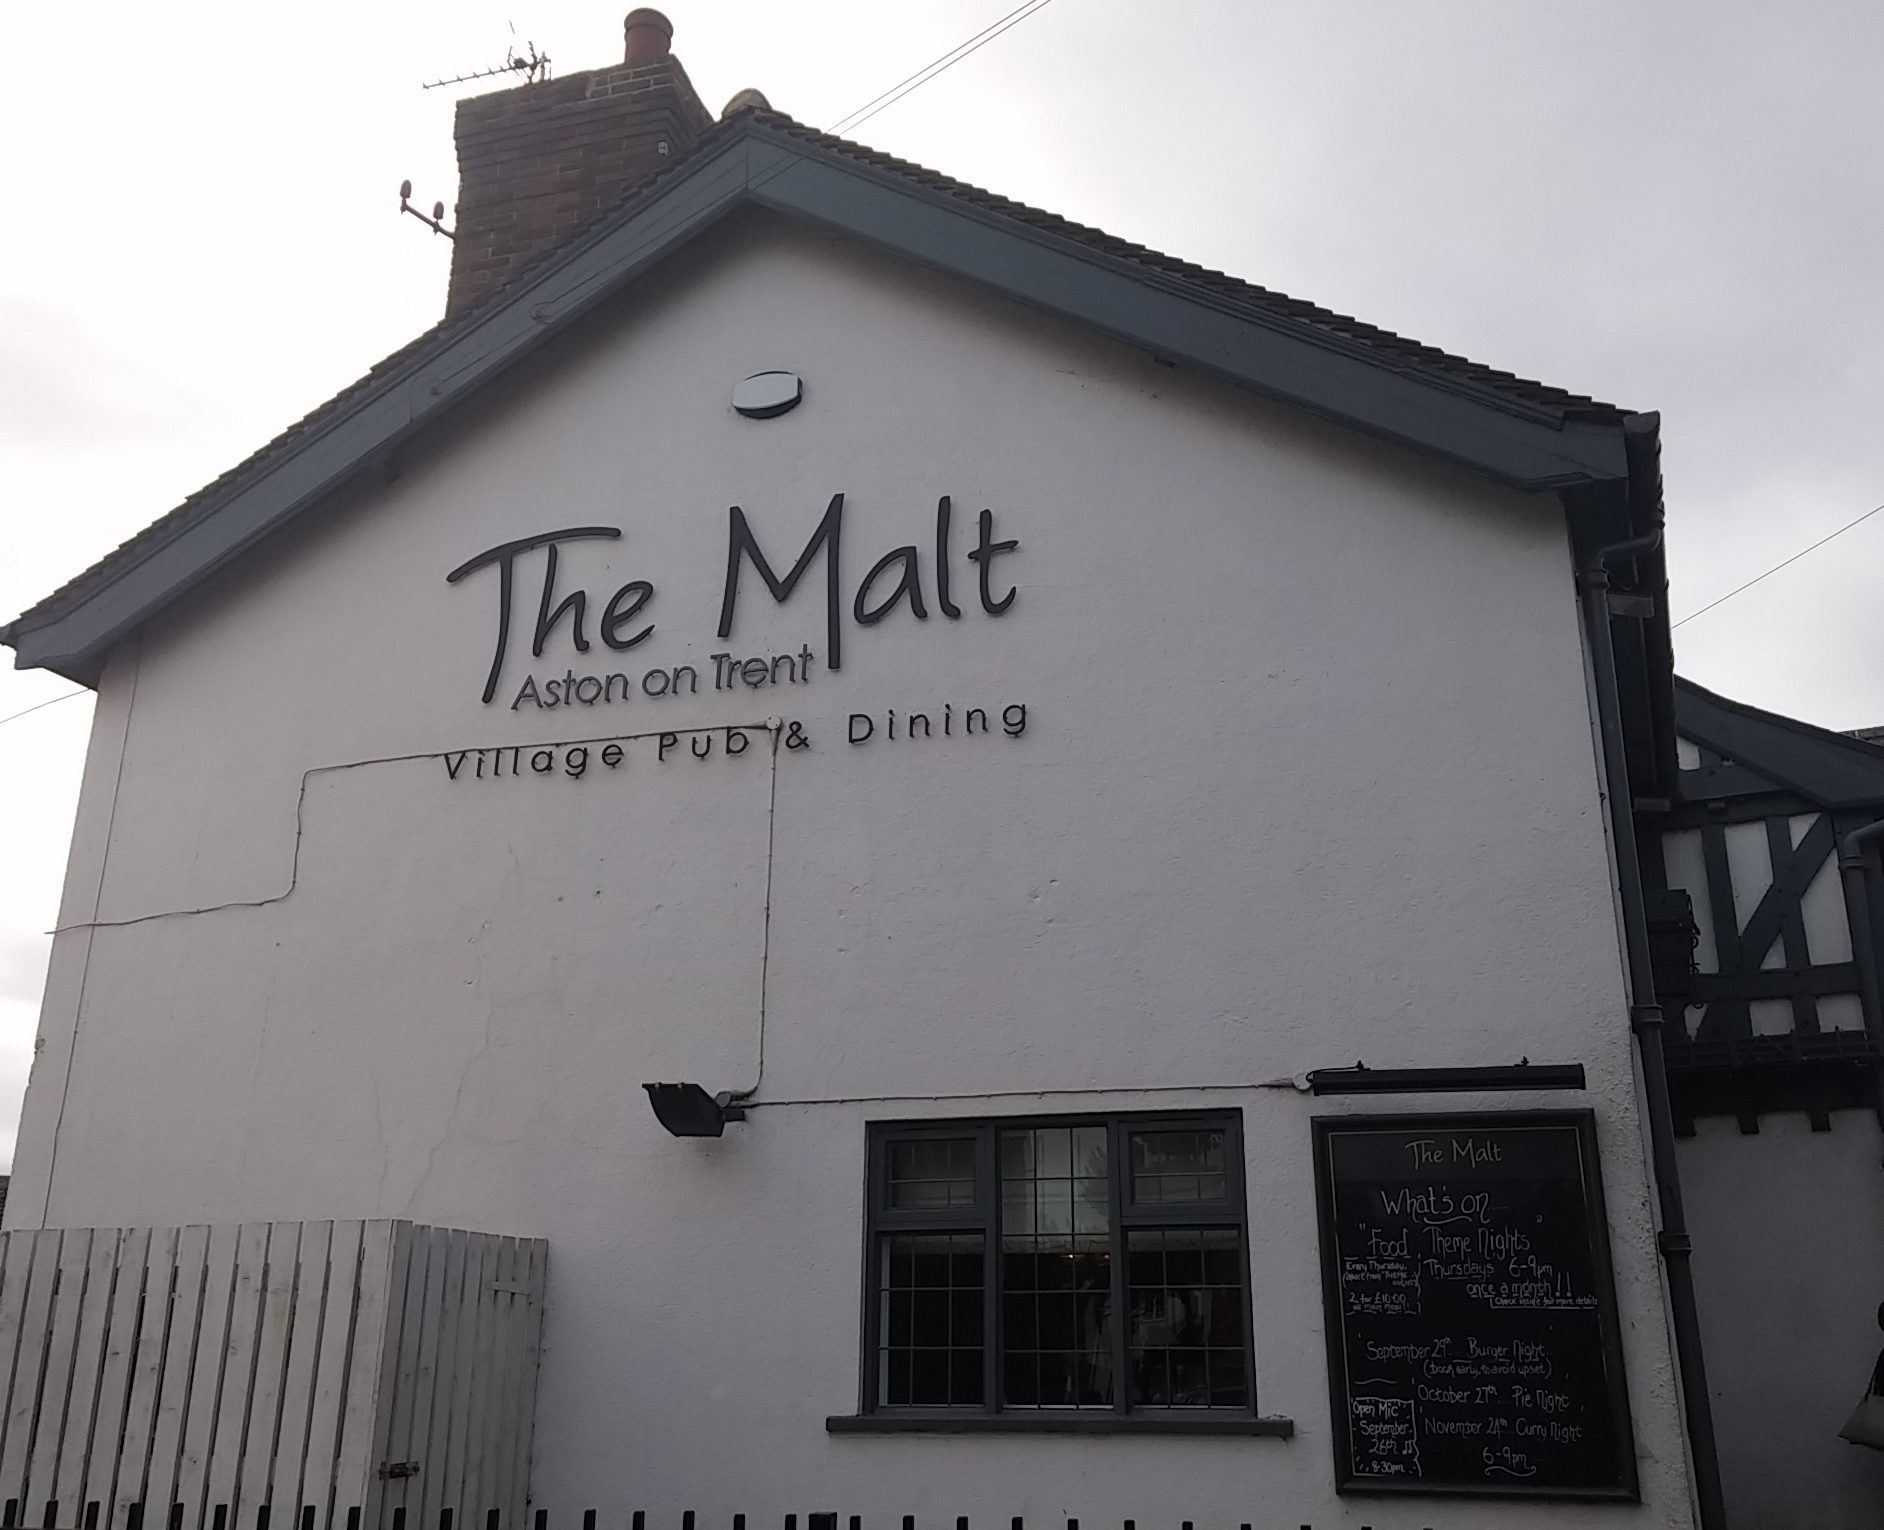 Gastropub review: The Malt, Aston-on-Trent, Derbyshire